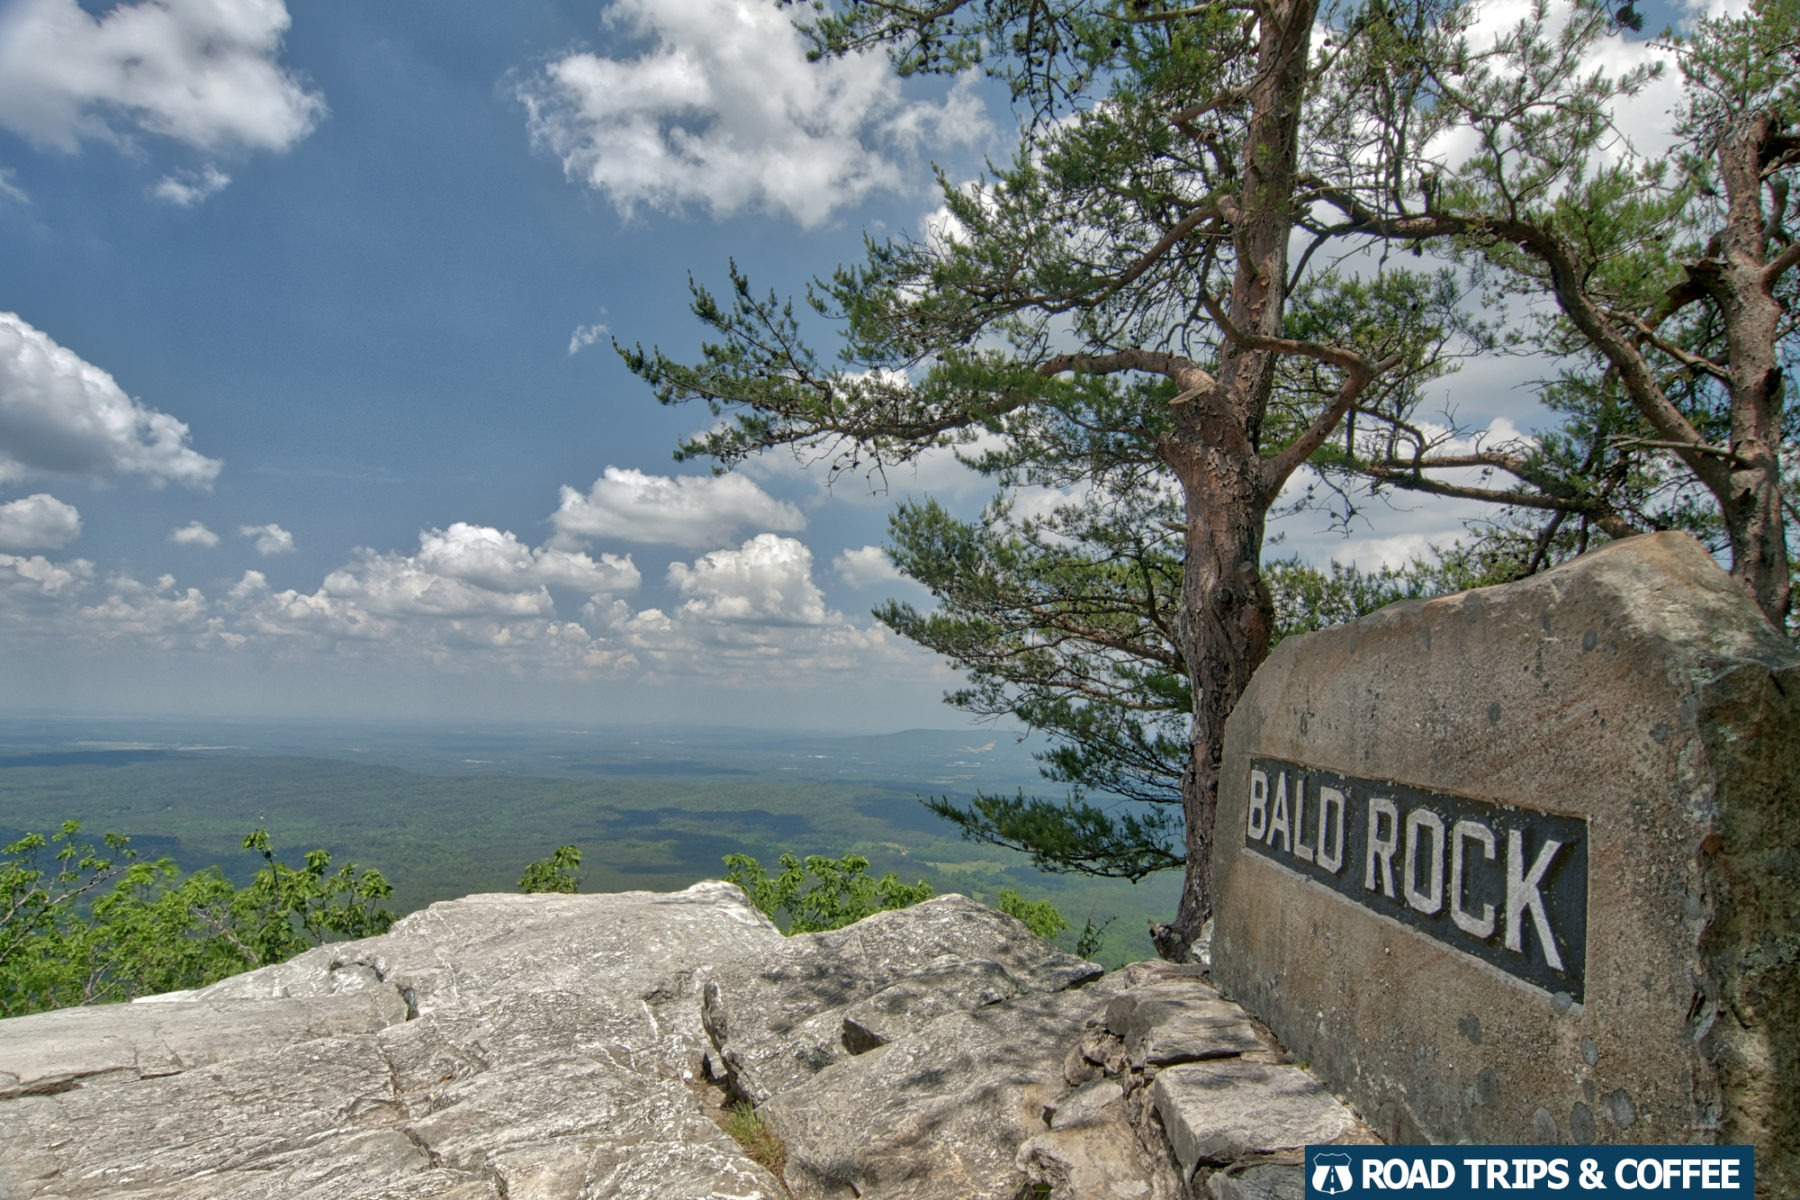 A view of the landscape from Bald Rock at Cheaha State Park in Alabama.